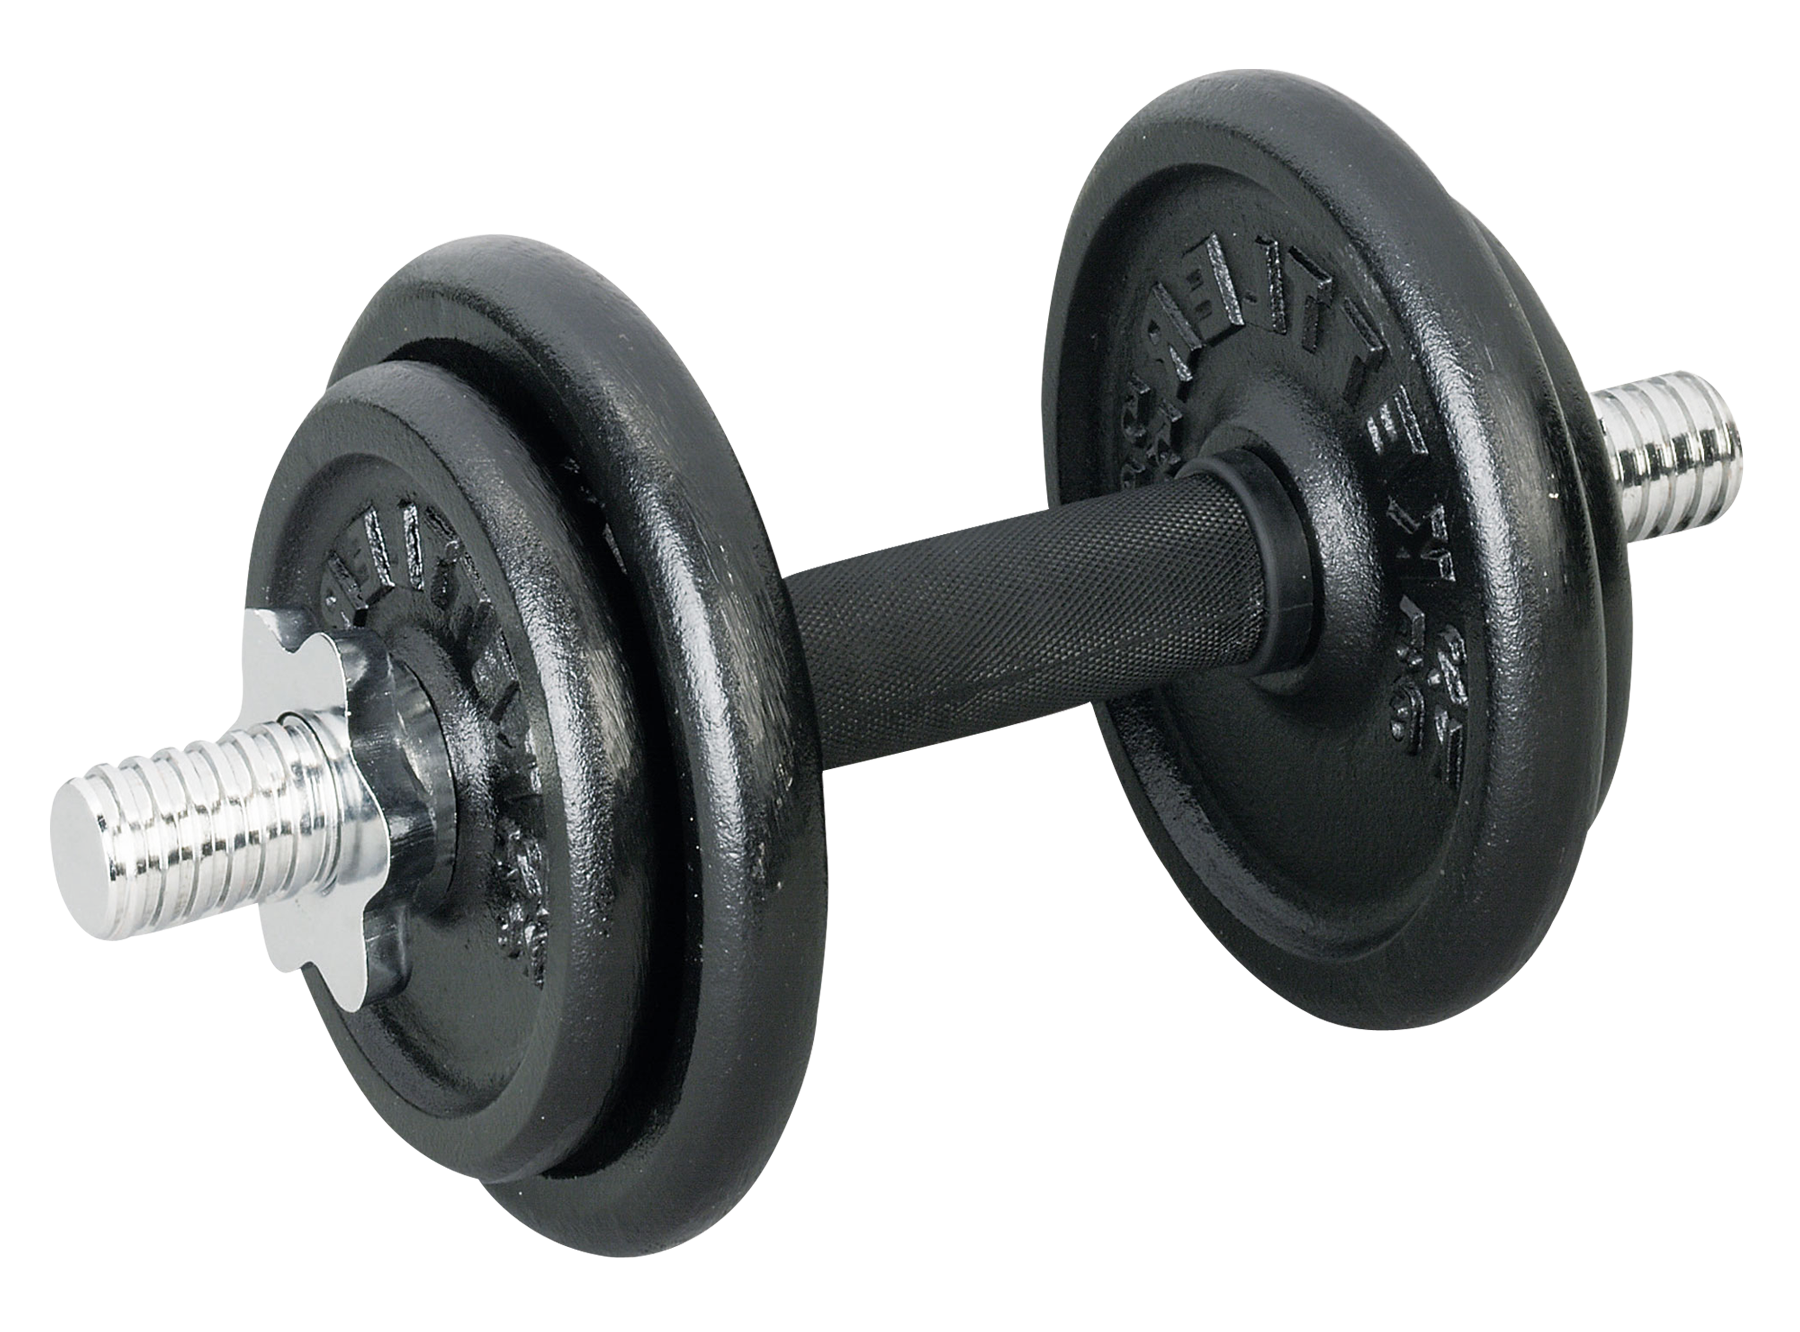 Dumbbell HD PNG - 93743